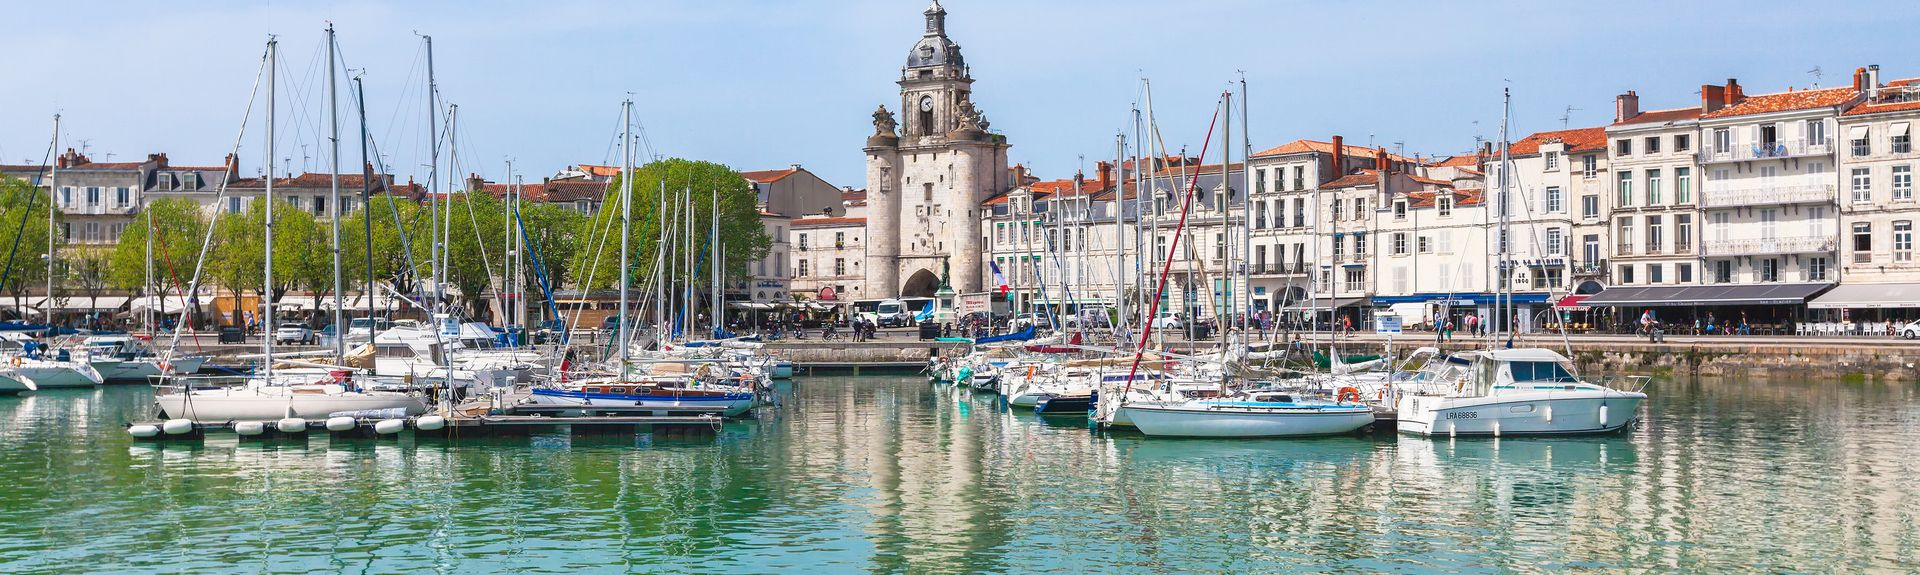 Hotel La Rochelle Port Vrbo La Rochelle Fr Vacation Rentals Reviews Booking